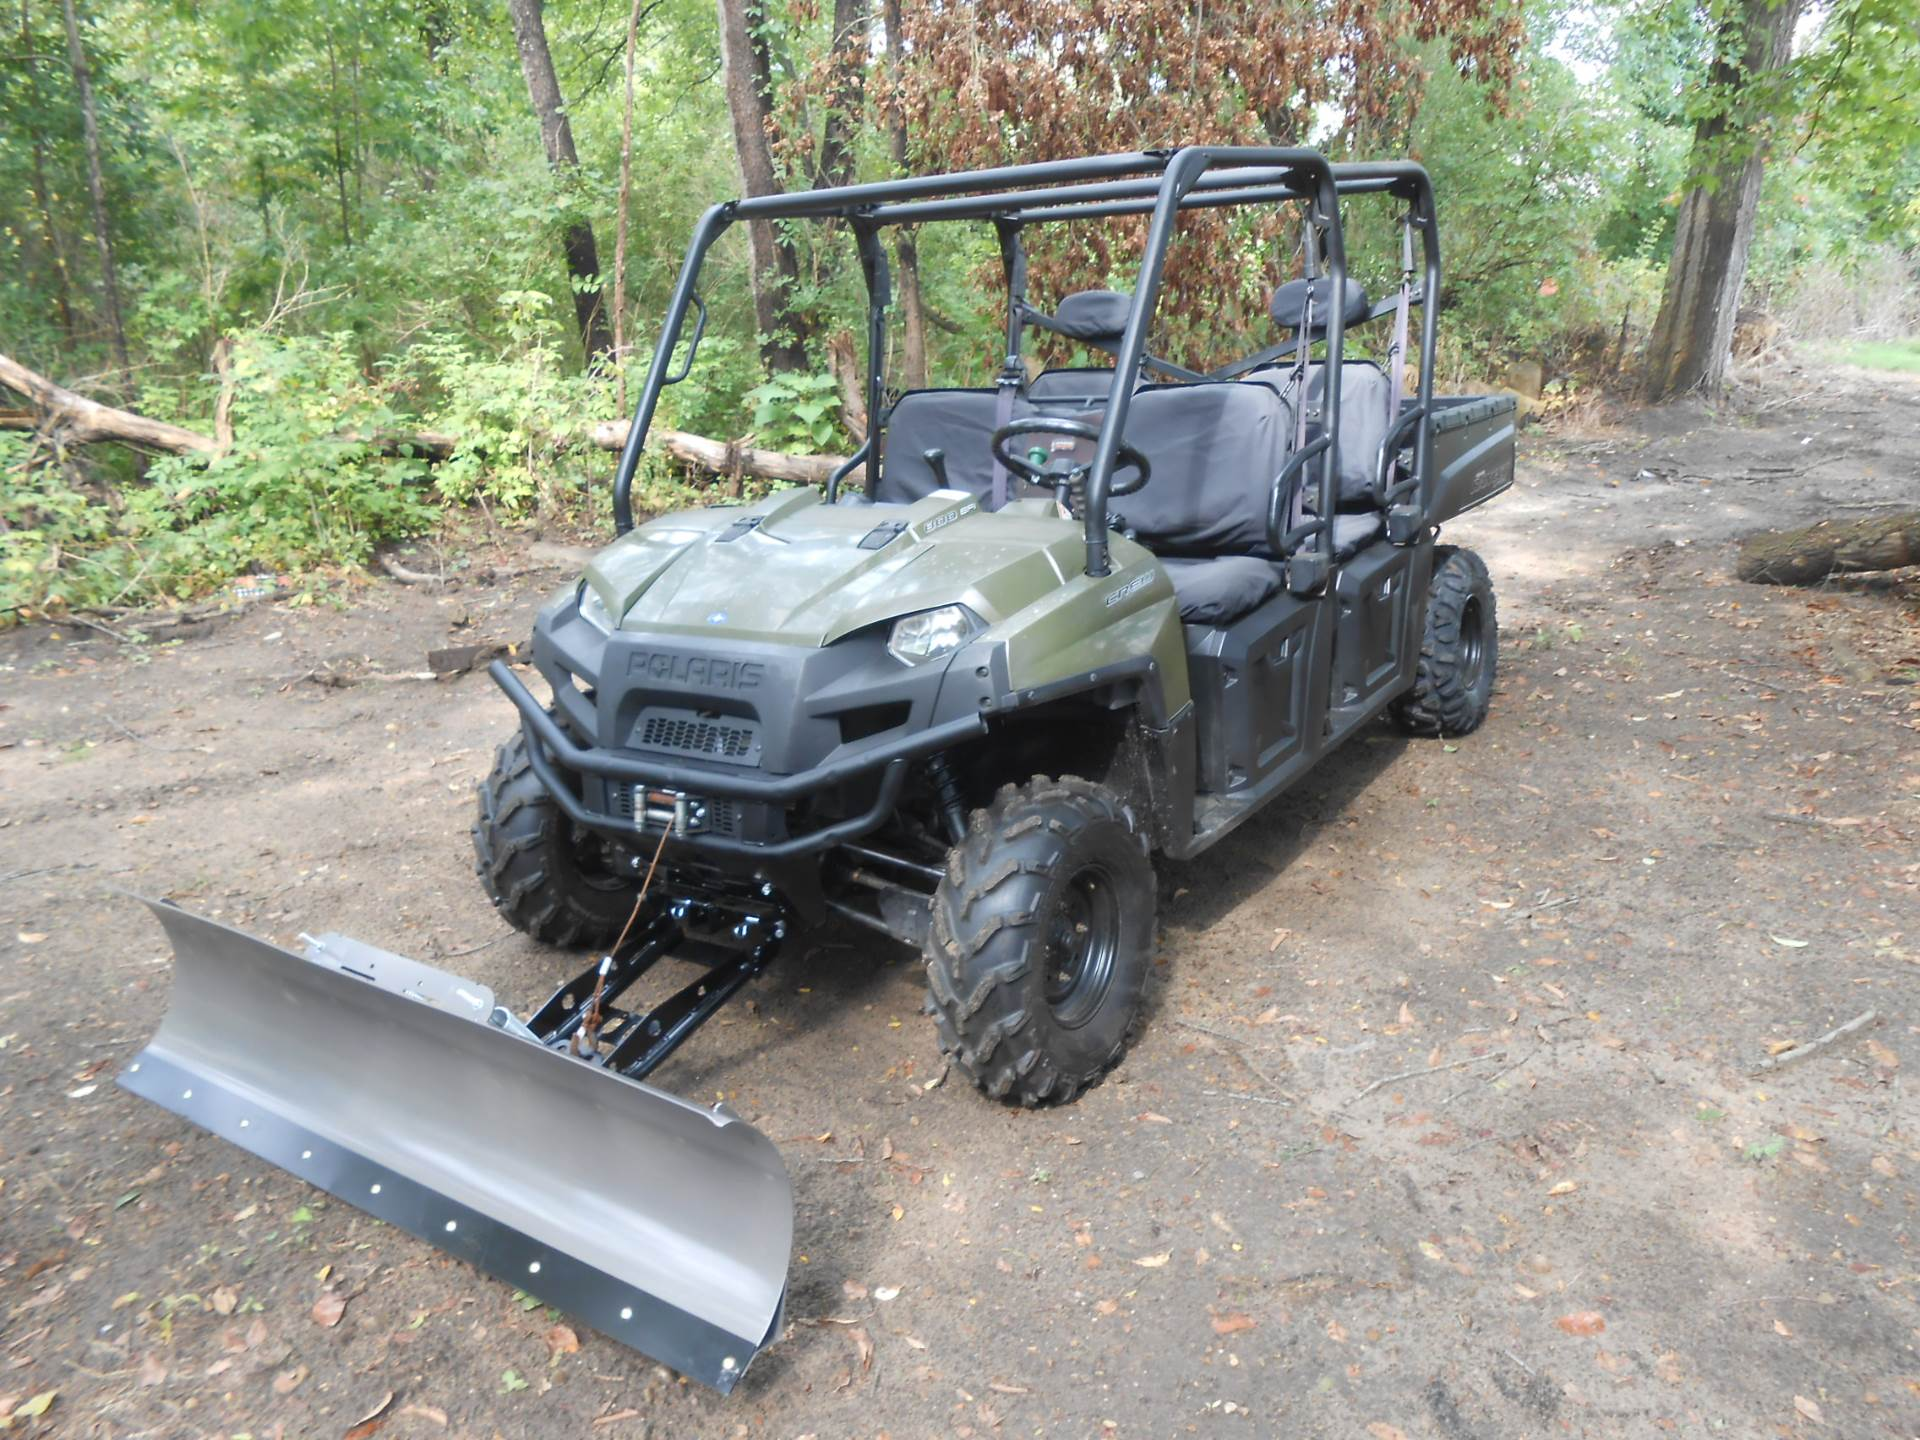 2014 Polaris Ranger Crew® 800 EFI in Howell, Michigan - Photo 1